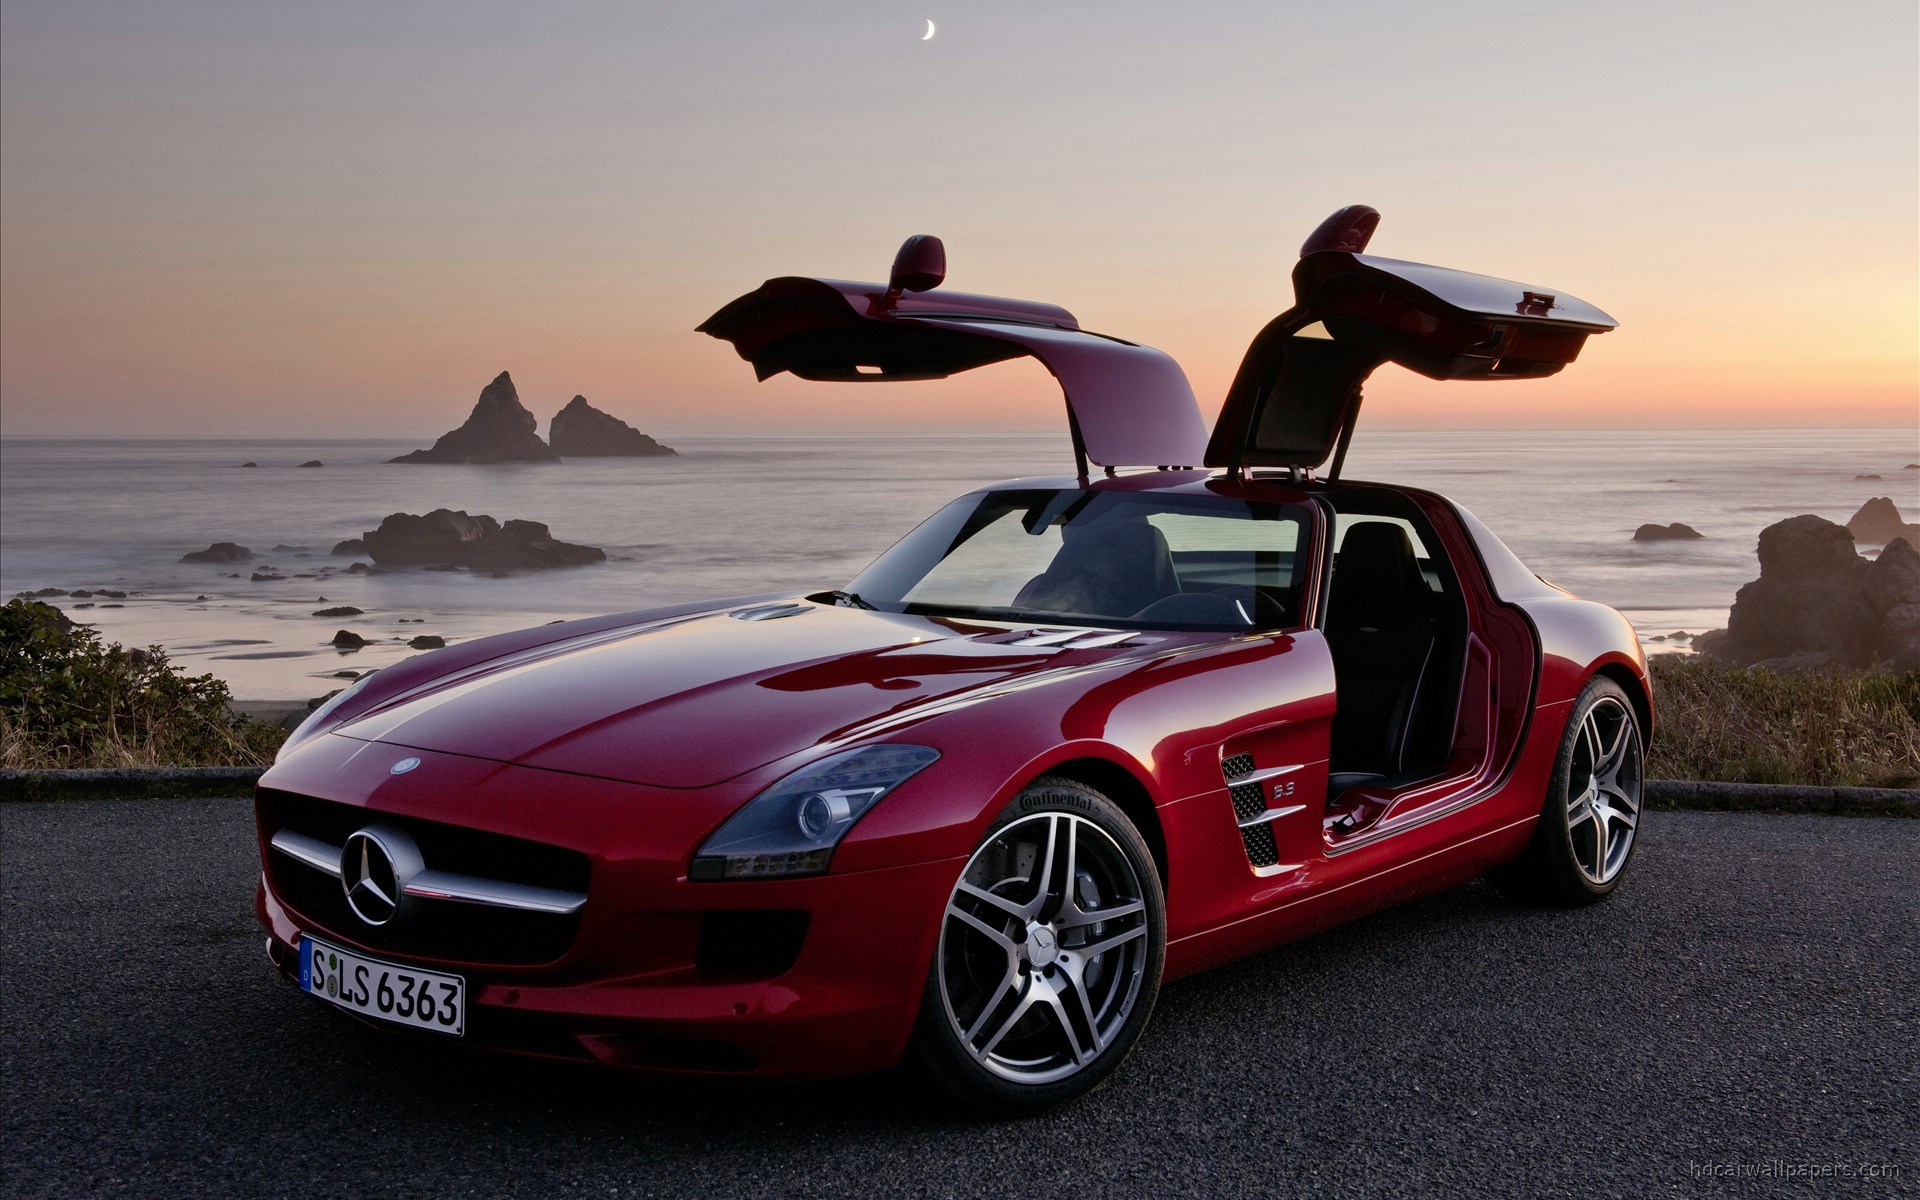 2011 Mercedes Benz SLS AMG 10 400.09 Kb